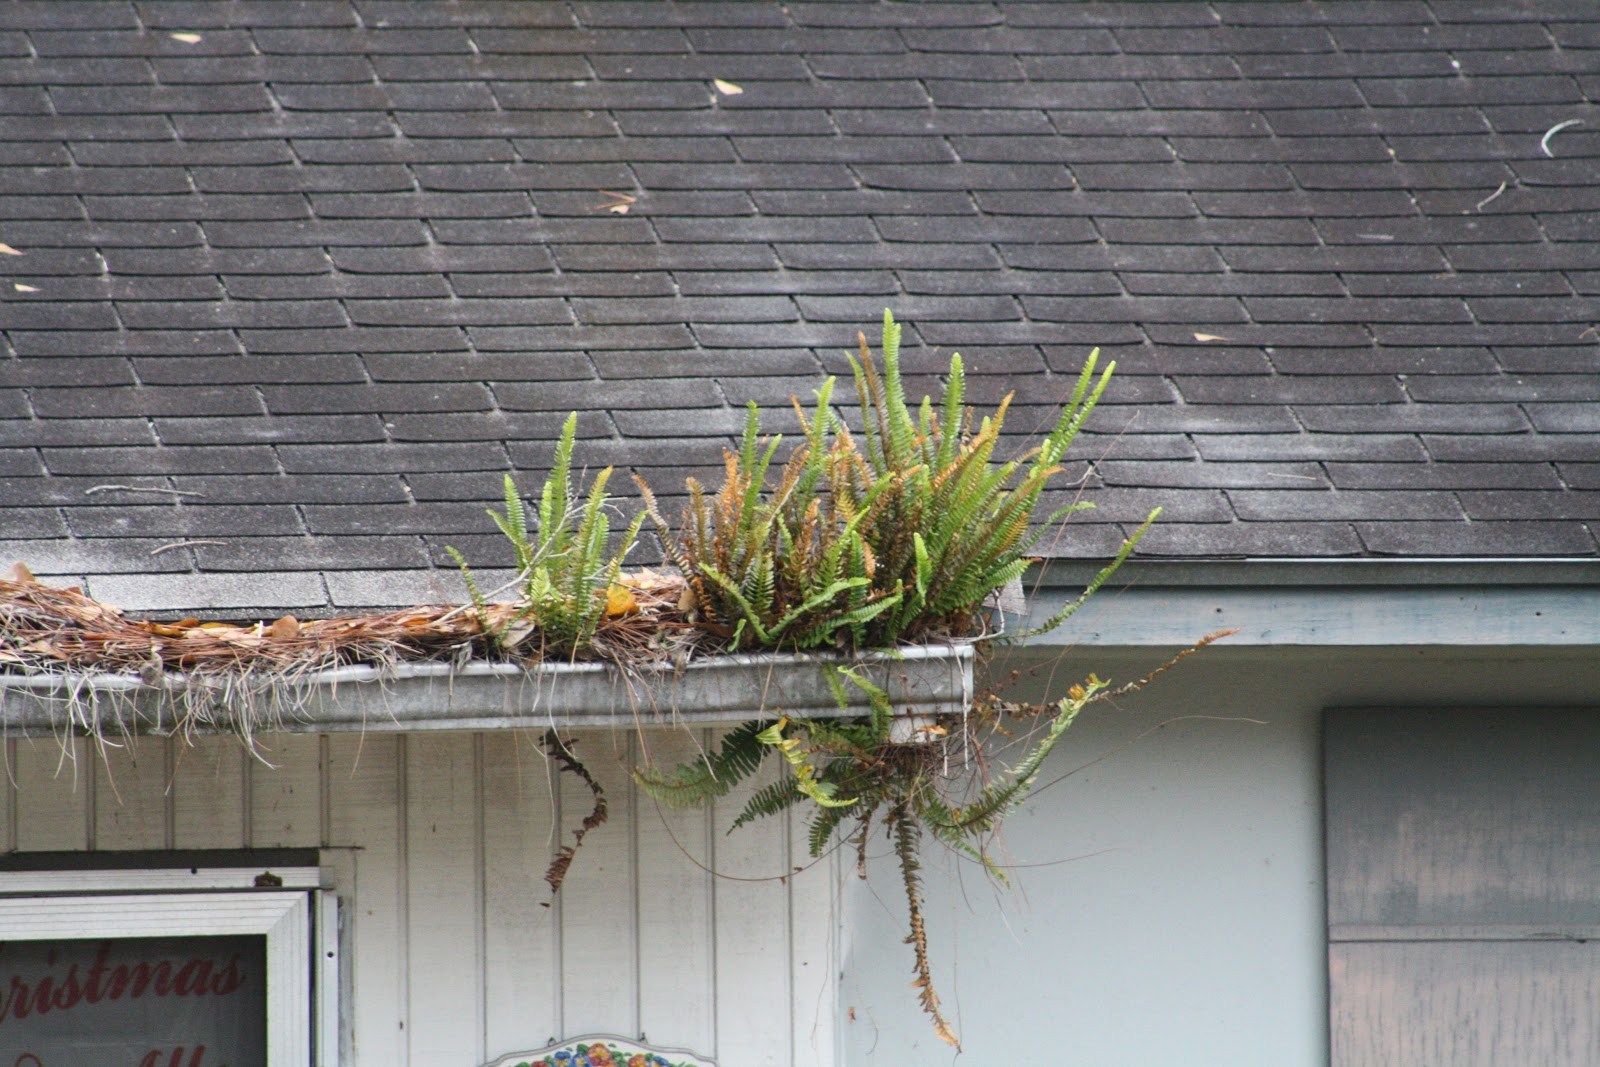 Kevin Songer Green Roof Plants How Do I Choose Quick